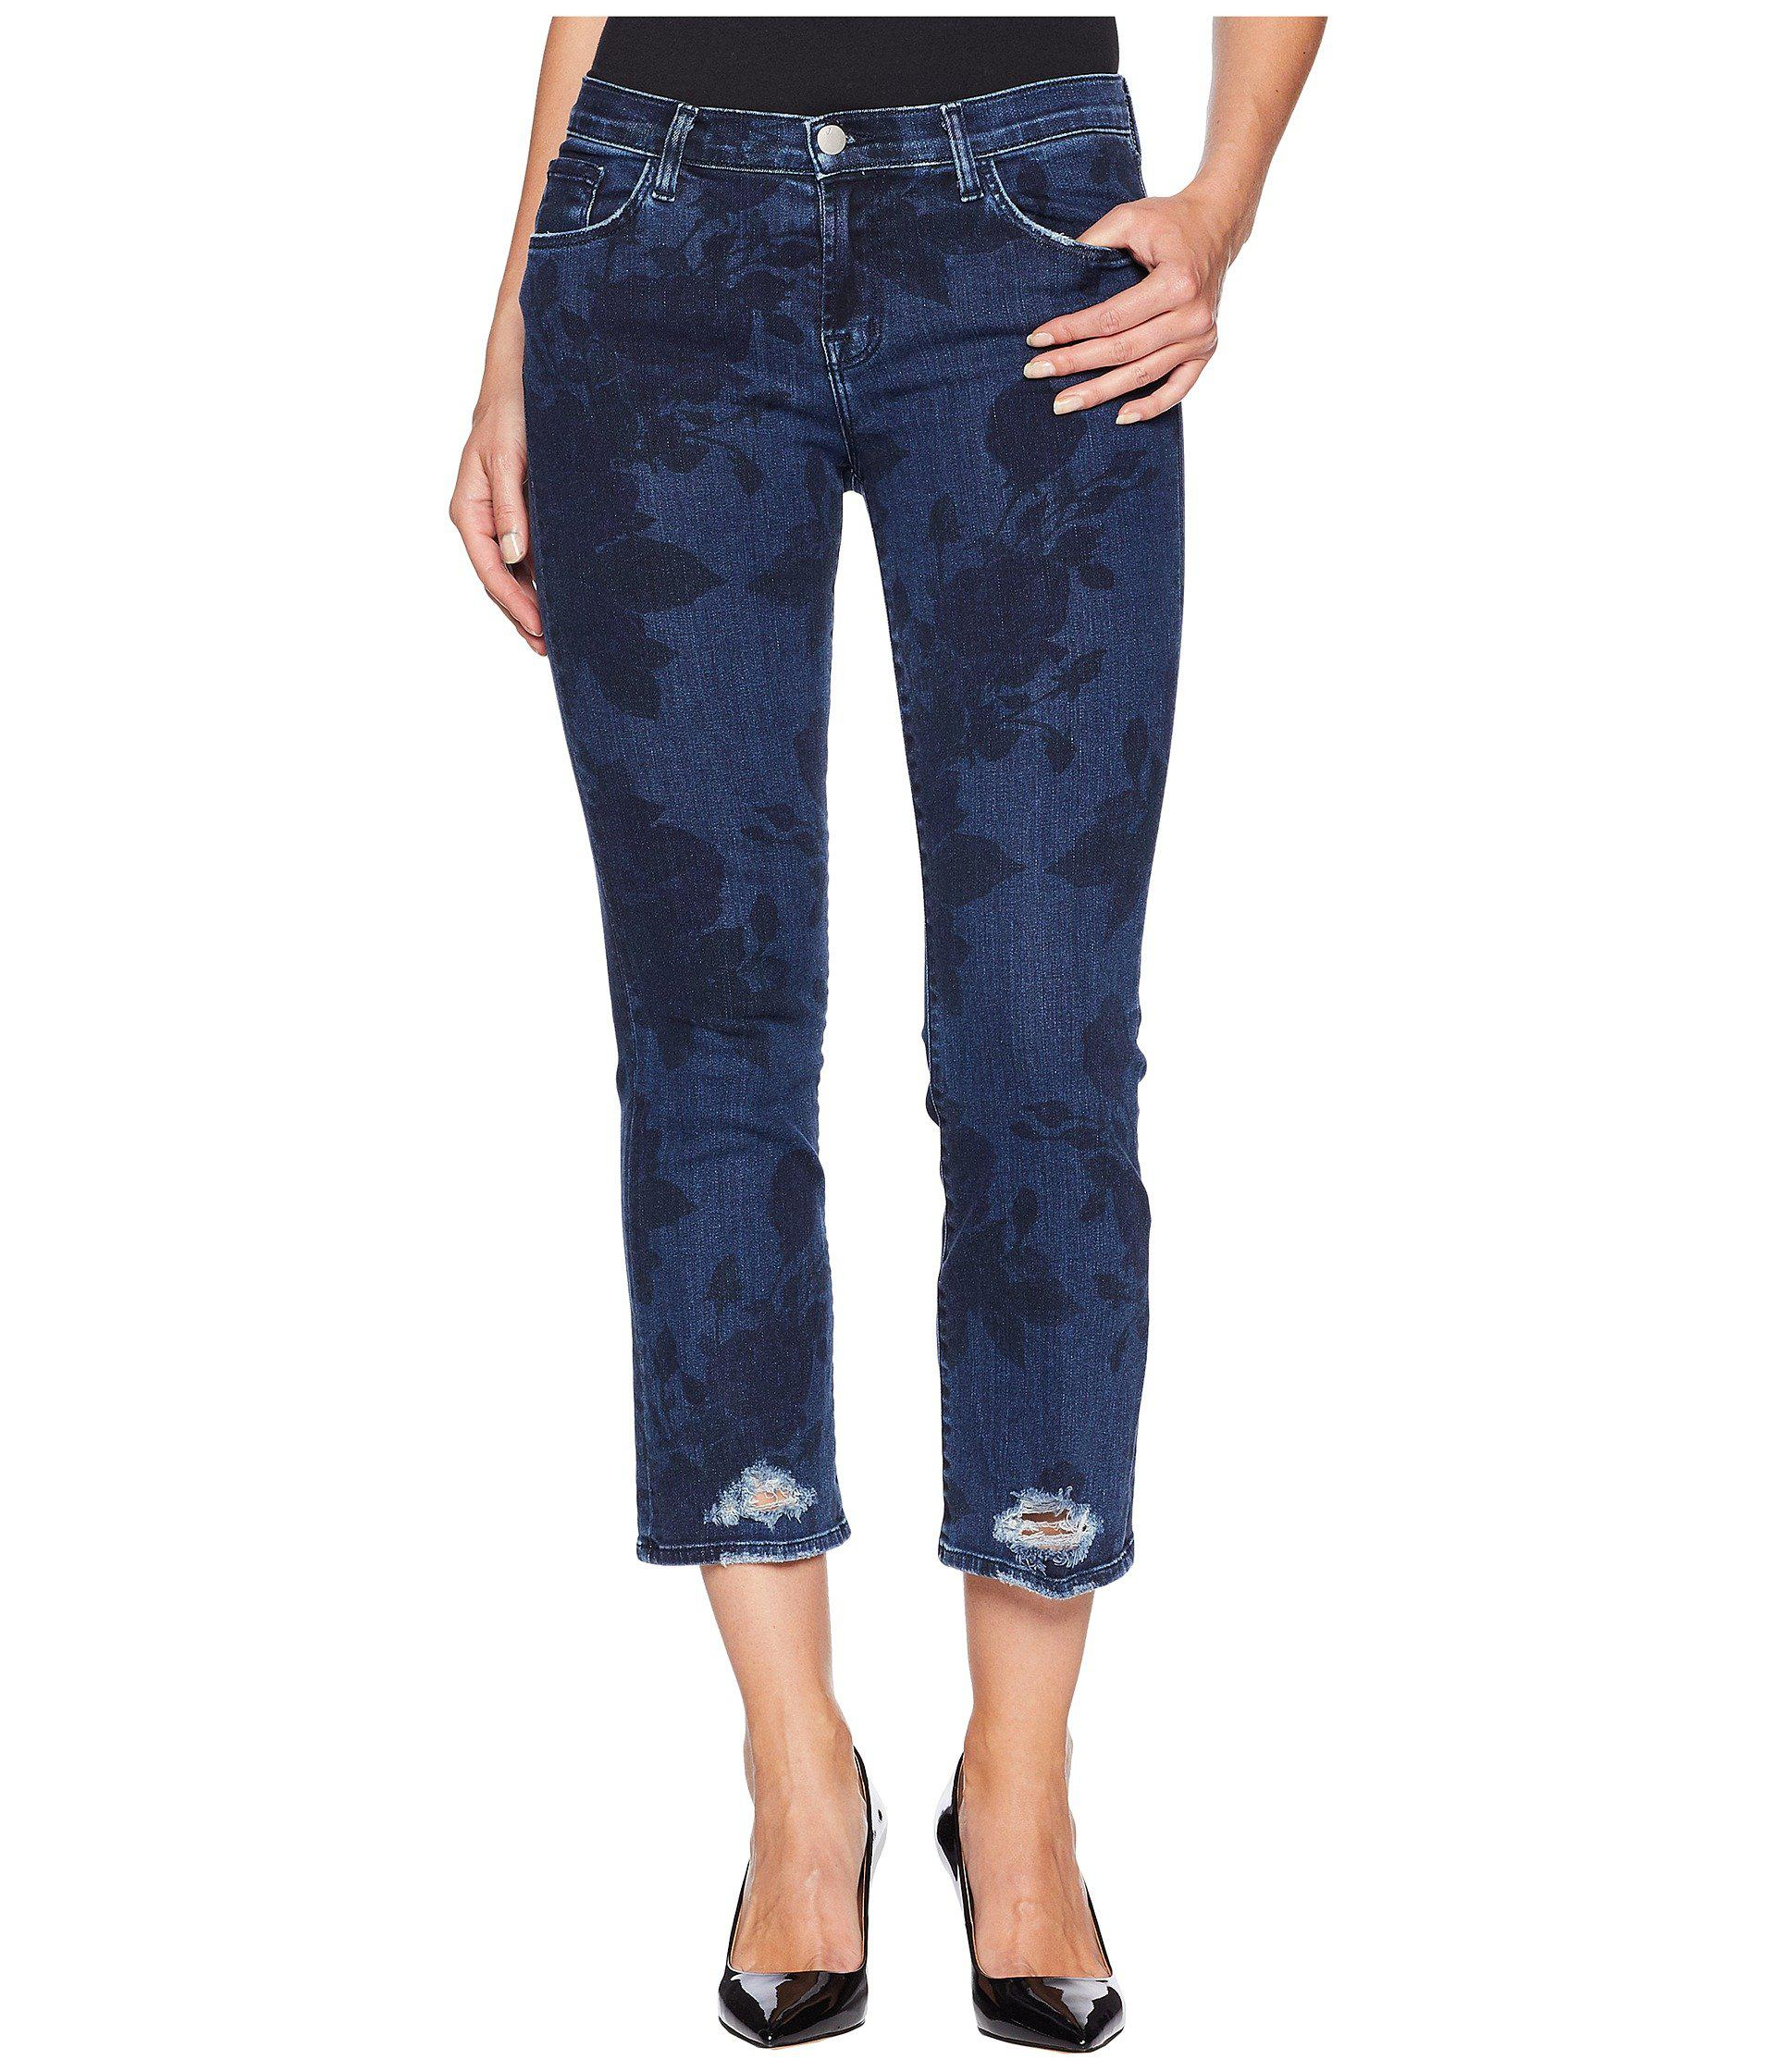 485dafb3c517 Lyst - J Brand Selena Mid-rise Crop Boot Cut Jeans In Cotillion in ...